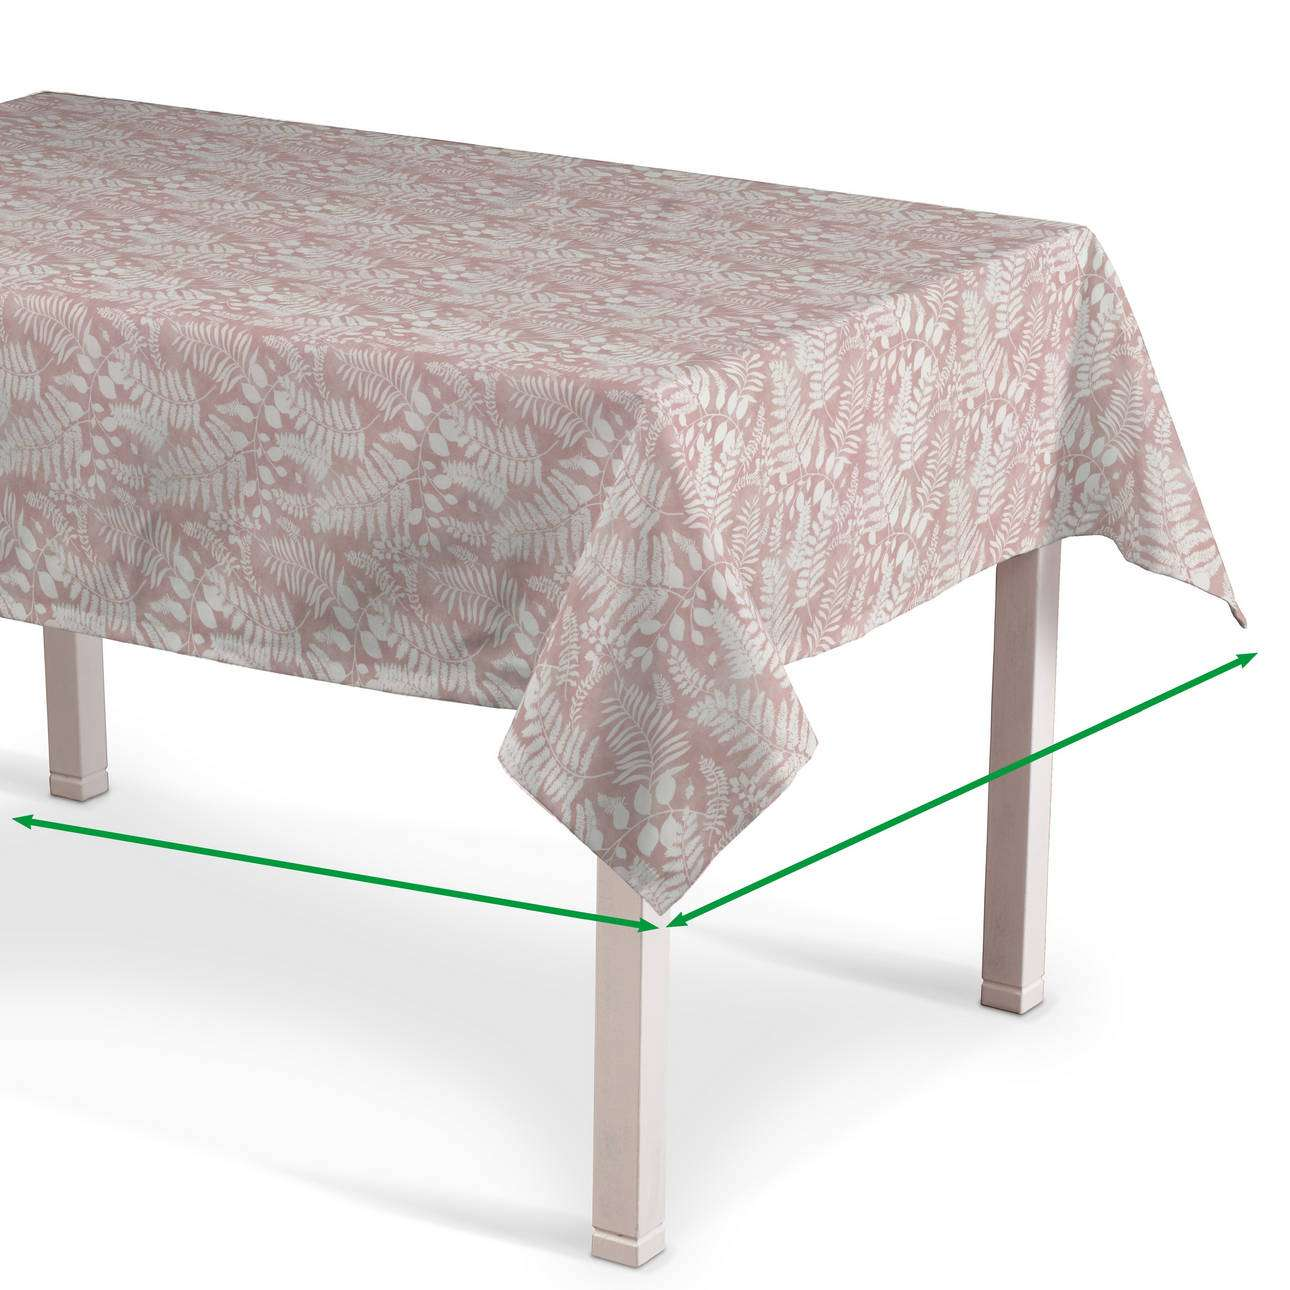 Rectangular tablecloth in collection Pastel Forest, fabric: 142-48